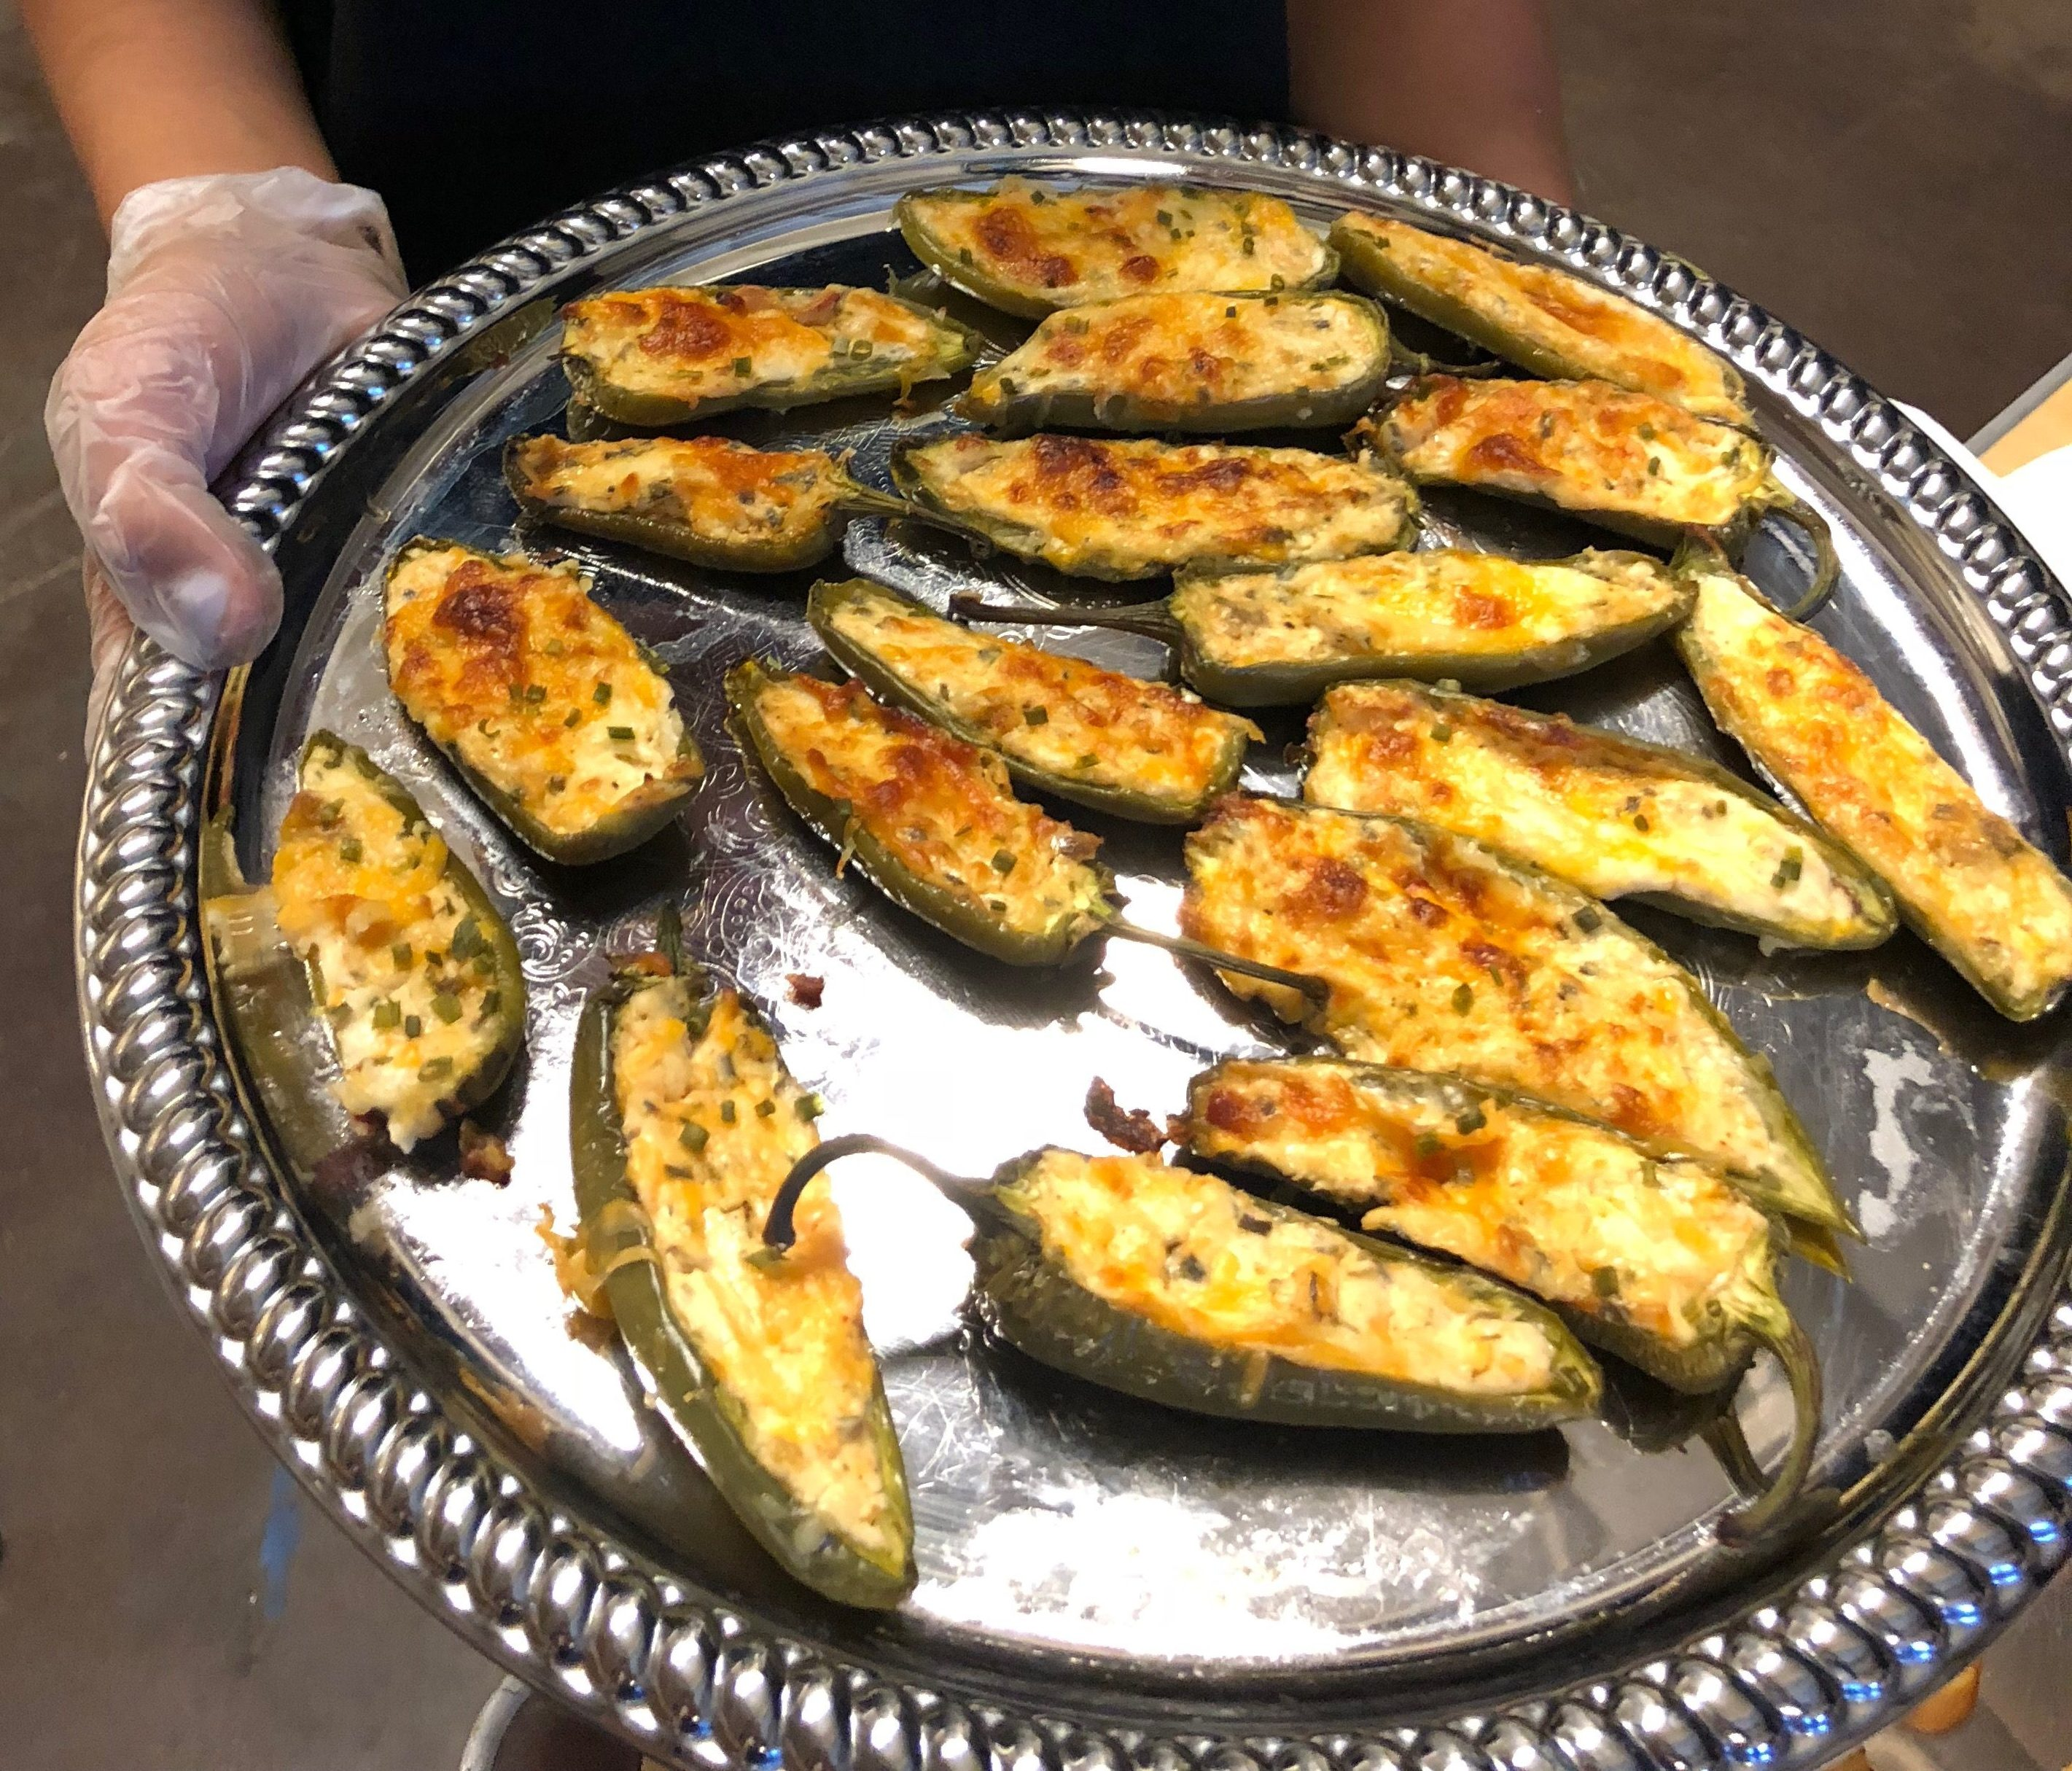 Jalapeno Poppers - Passed Appetizer Service Kiss The Cook Catering